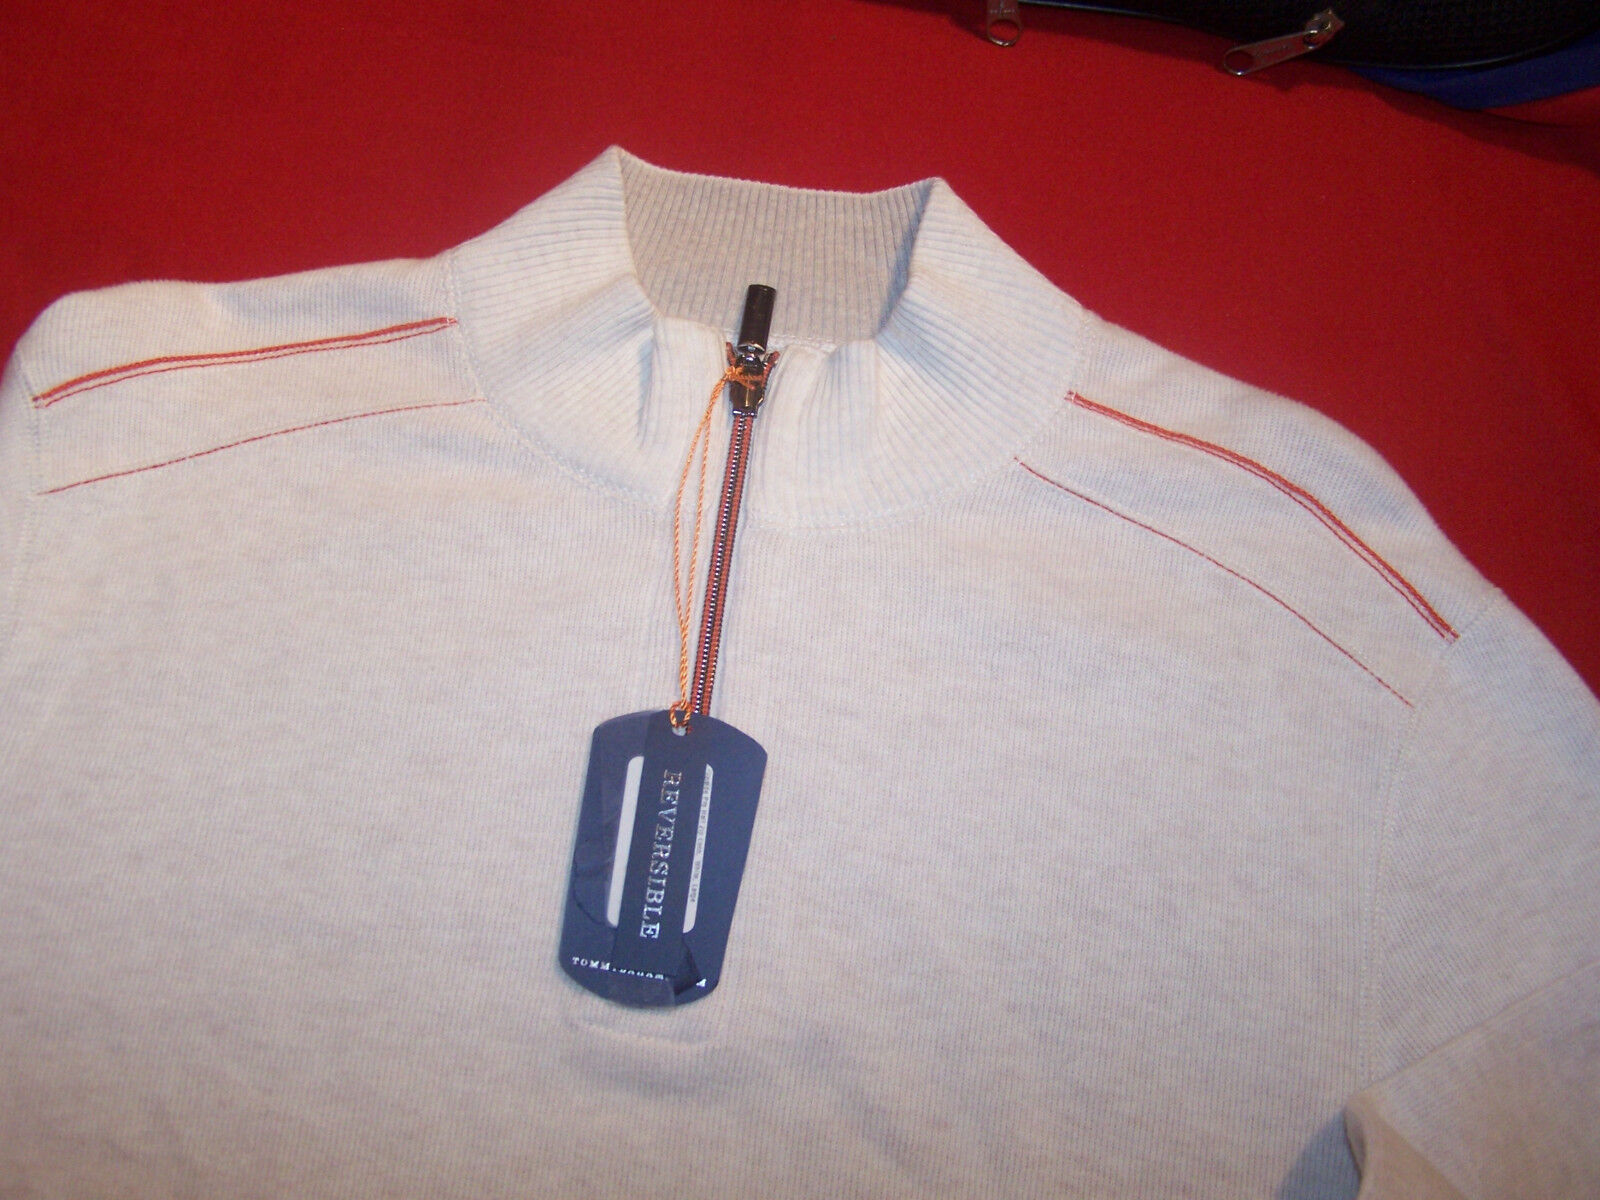 TOMMY BAHAMA - RELAX - MARLIN - REVERSIBLE SWEATER  - 1/2 ZIP COLLAR - TAGS